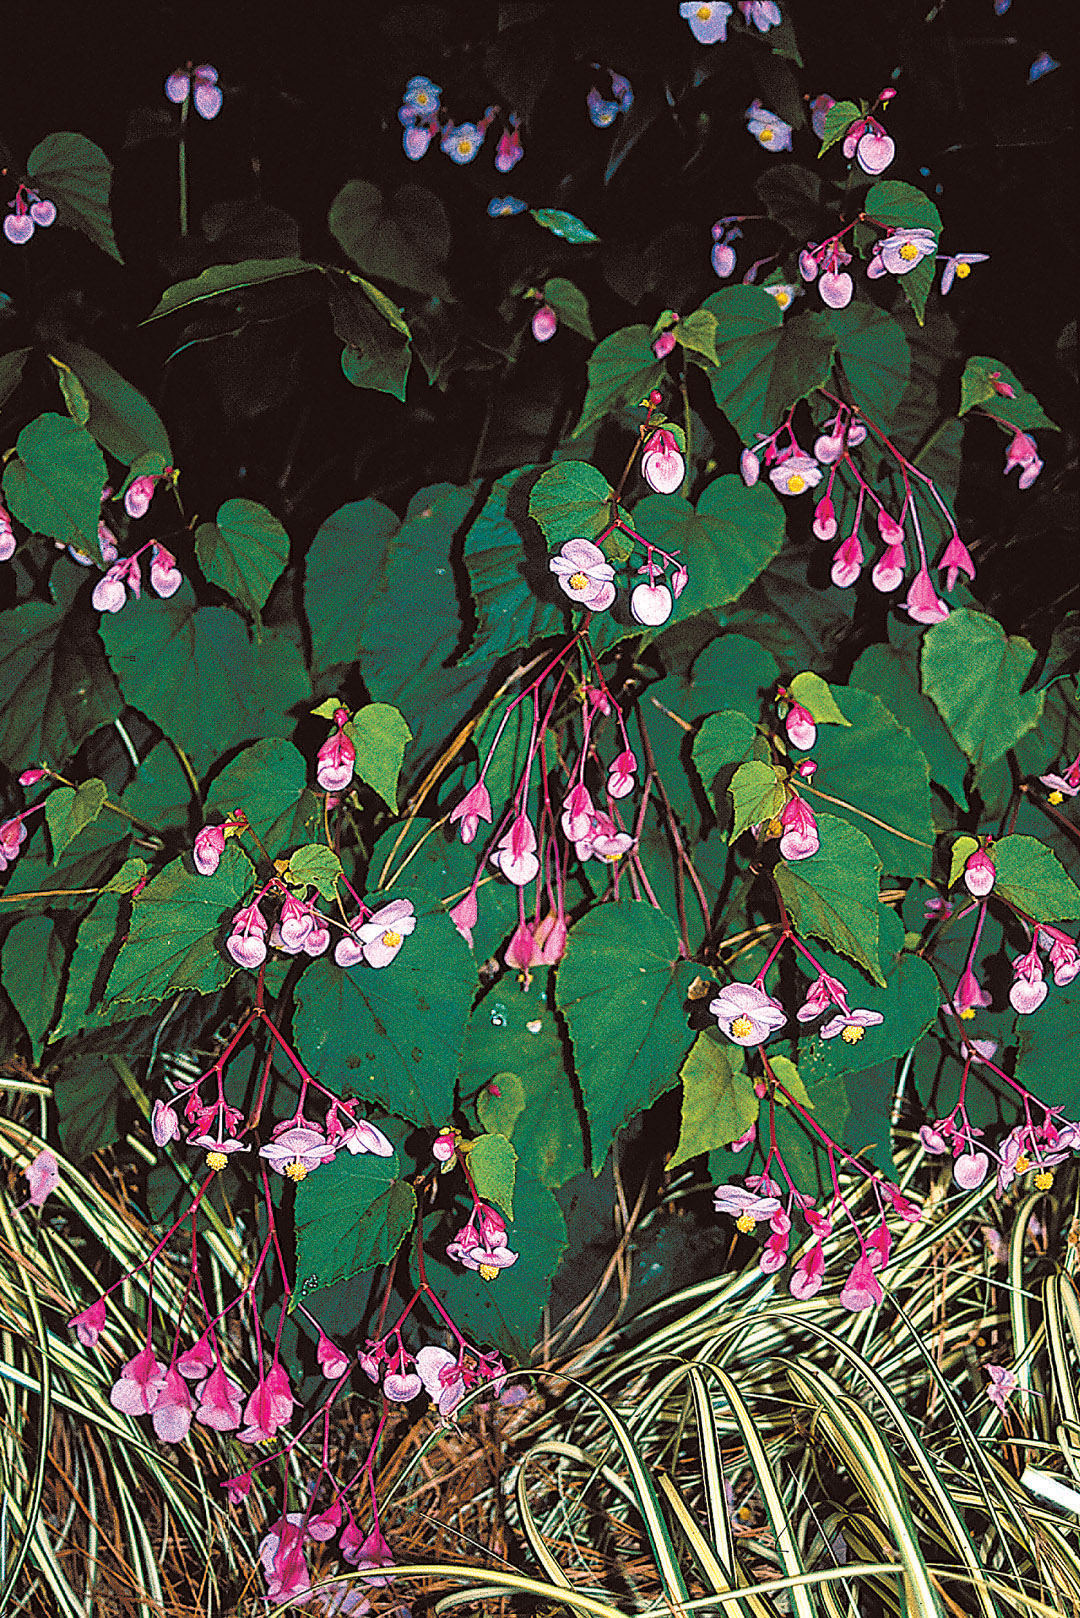 Pacific Horticulture Society A Bounty Of Hardier Begonias